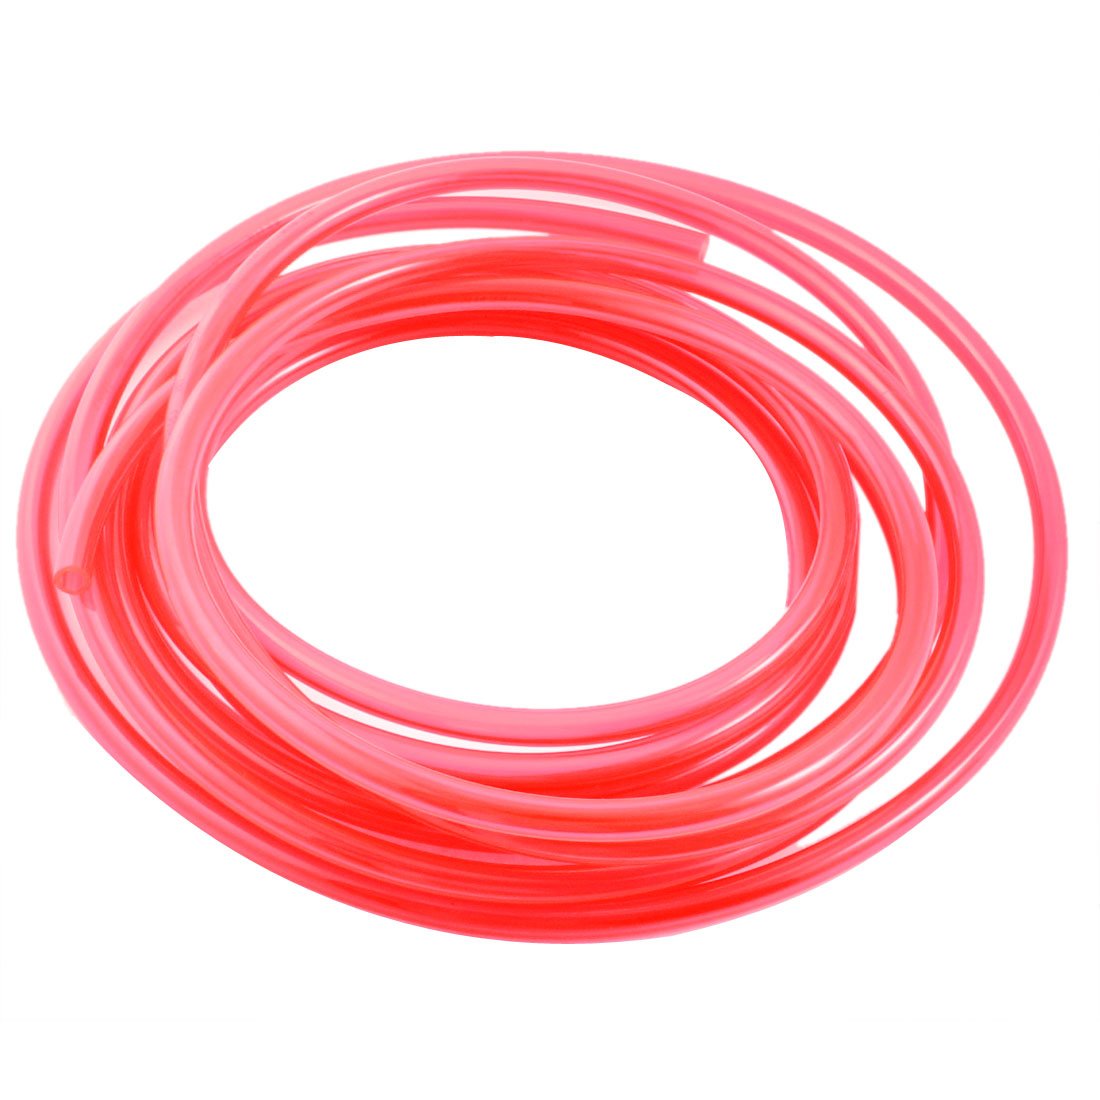 5M 5x8mm Air Compressor Fuel Gas Petrol Diesel PU Line Tube Hose Clear Red